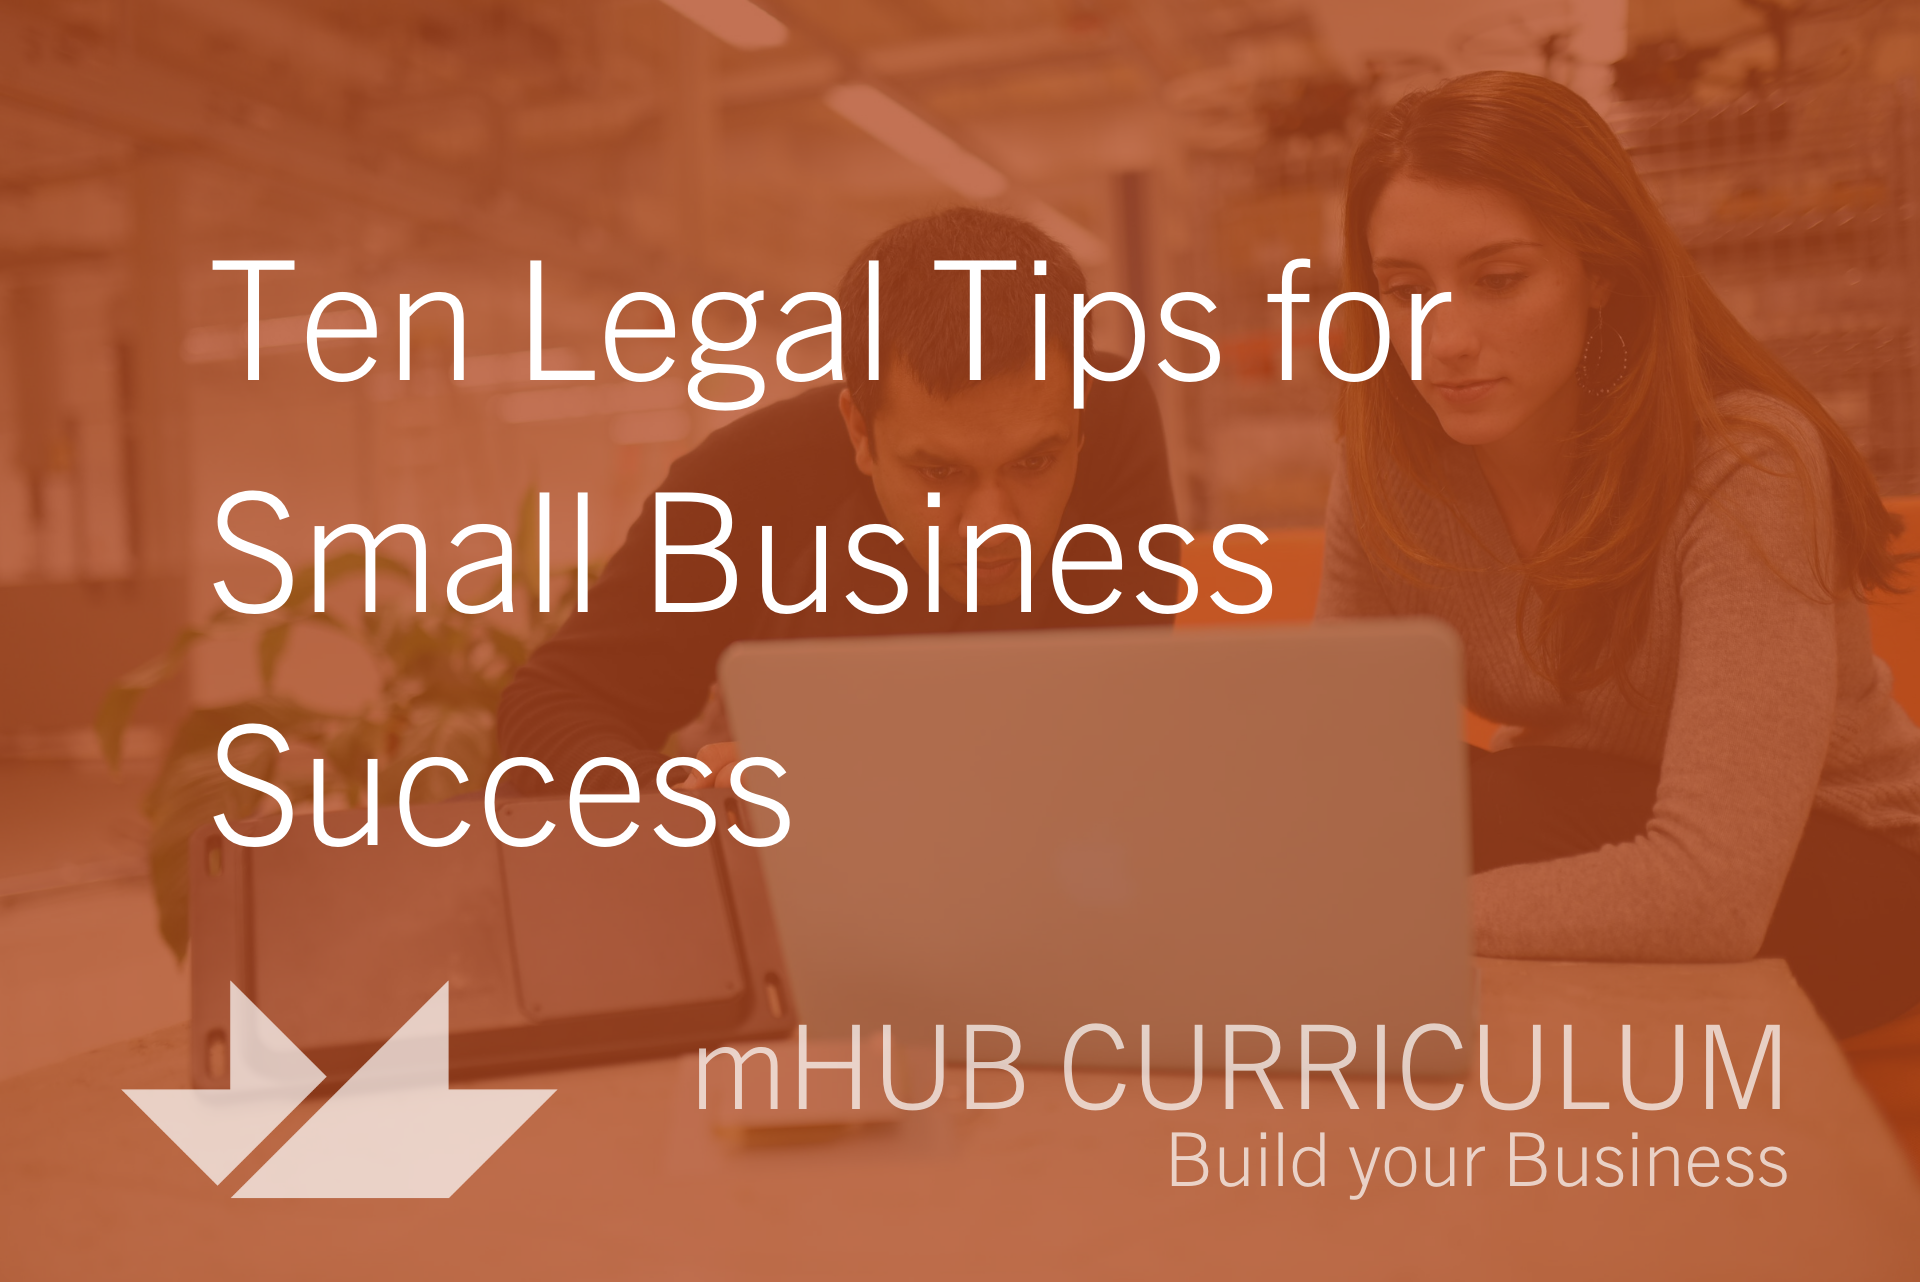 Ten Legal Tips for Small Business Success